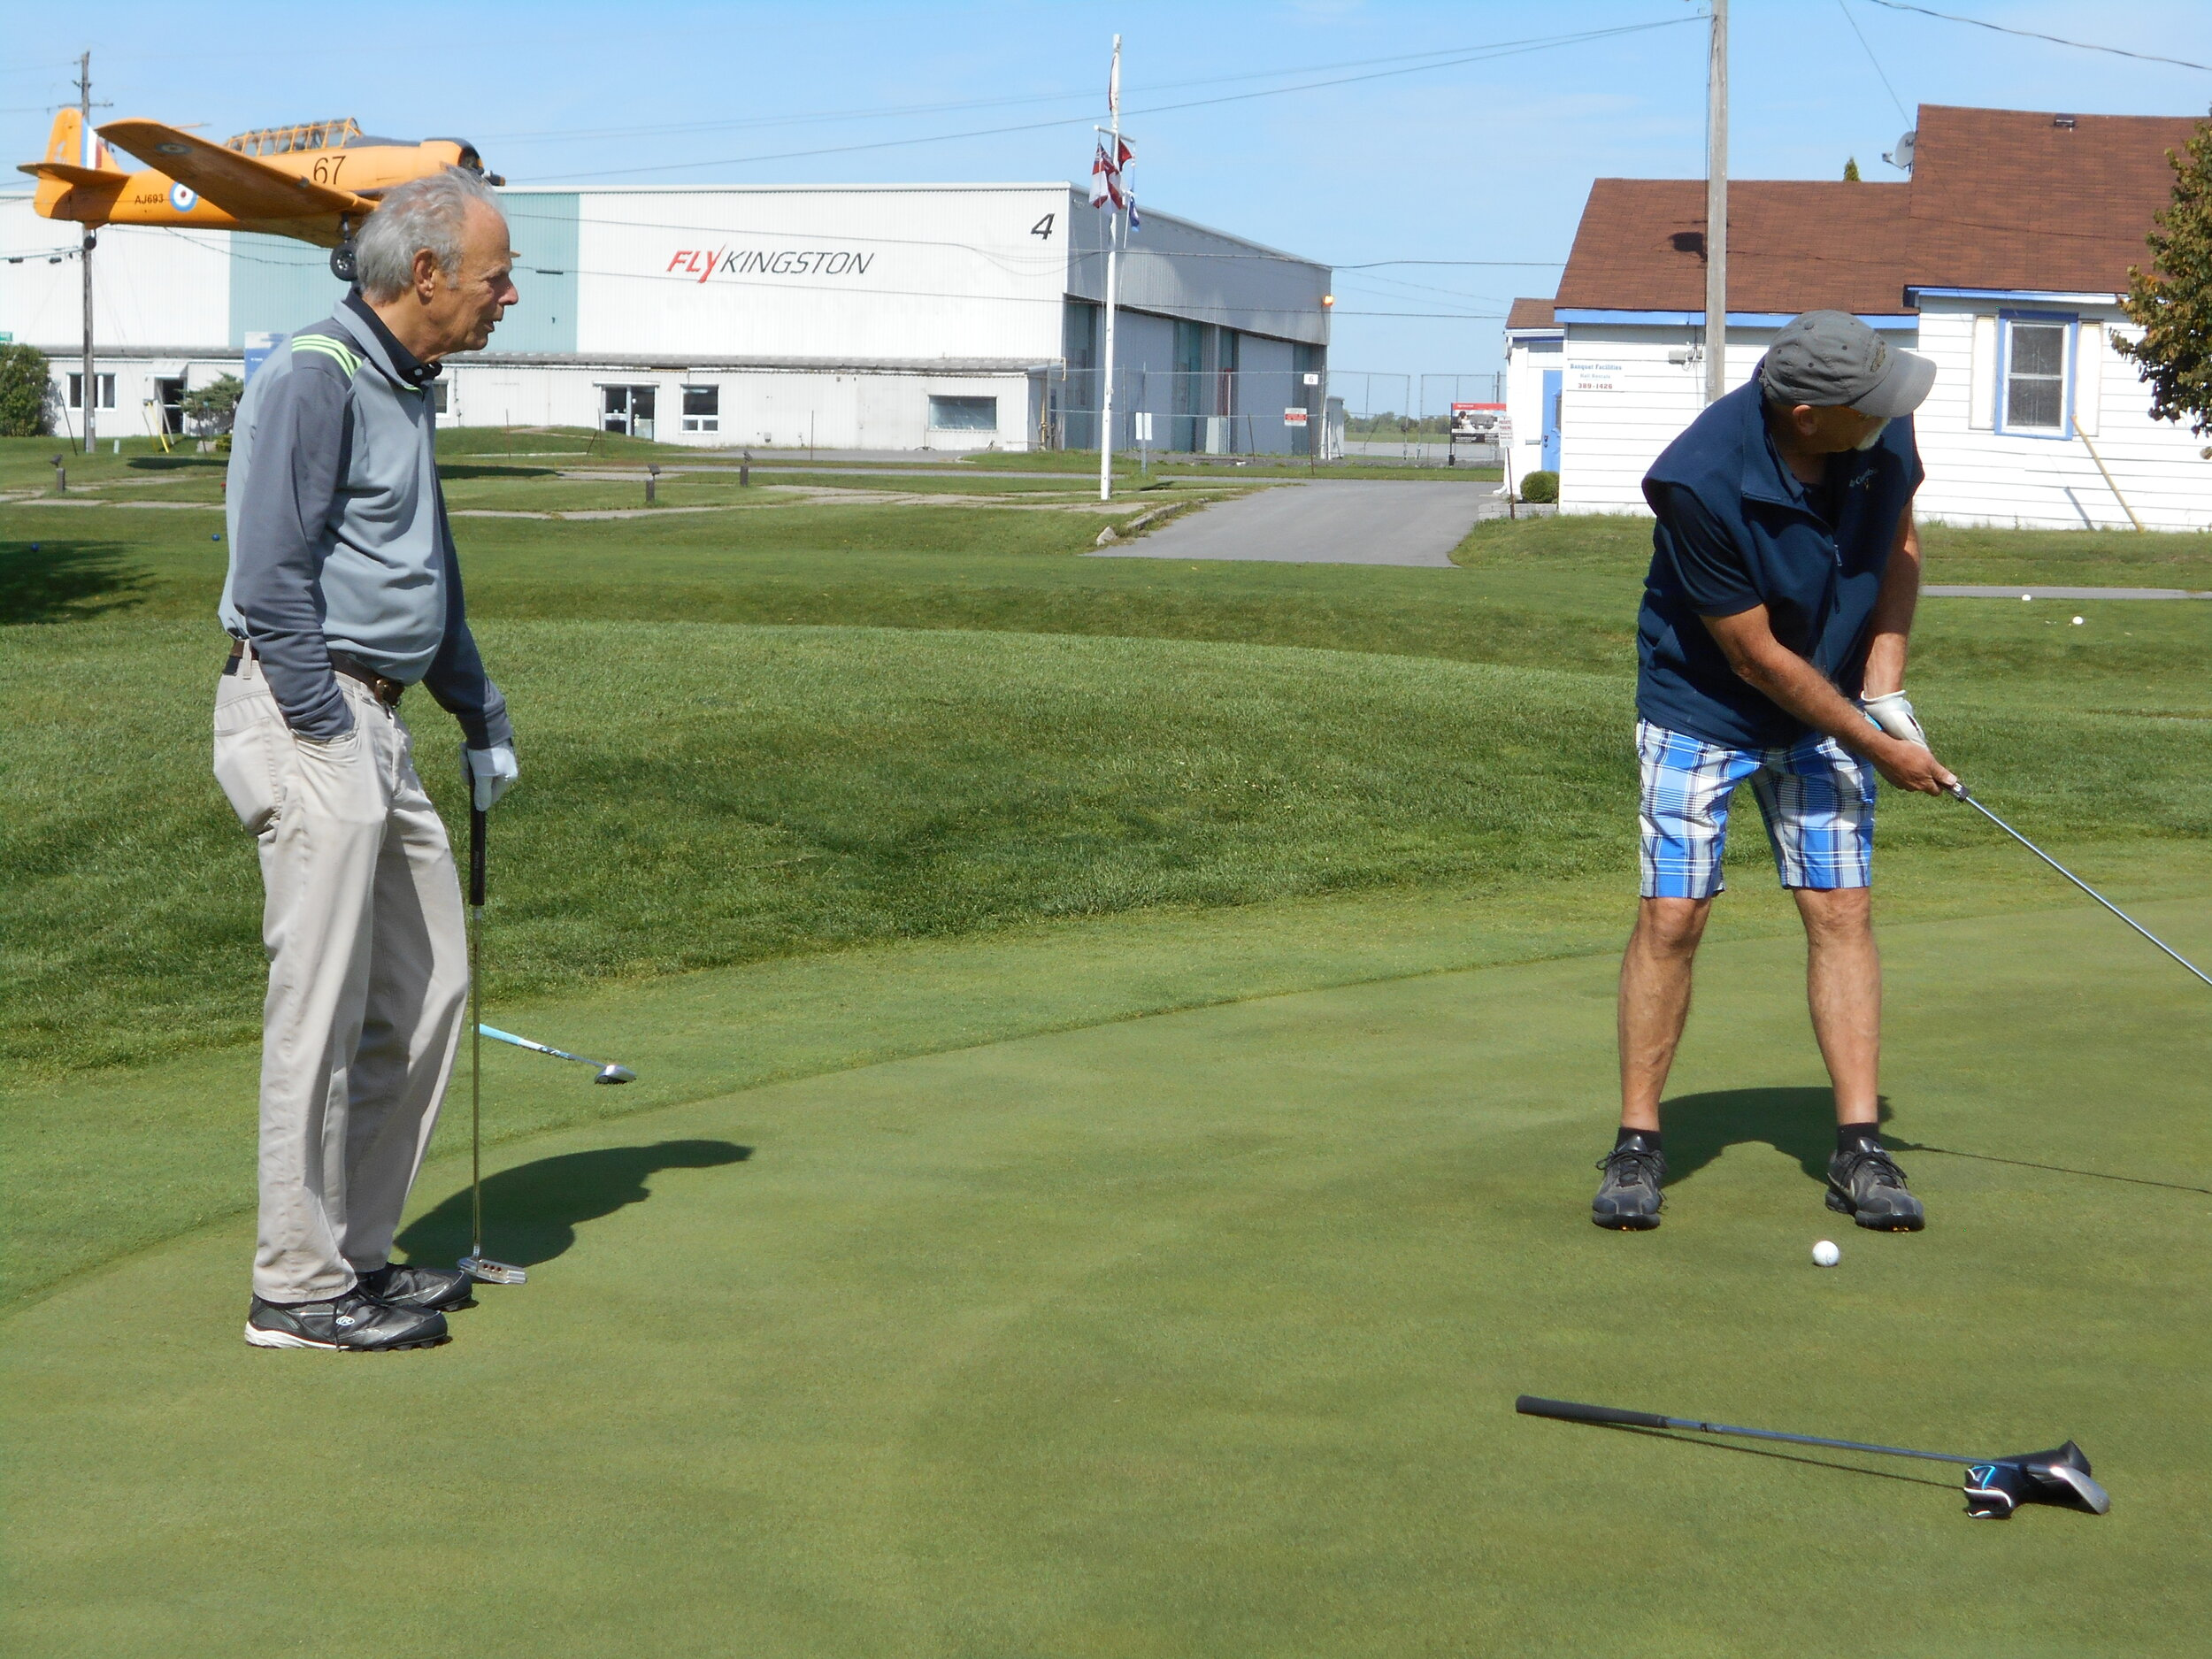 john britten - not sure were the putt went but he gets style points for the shorts